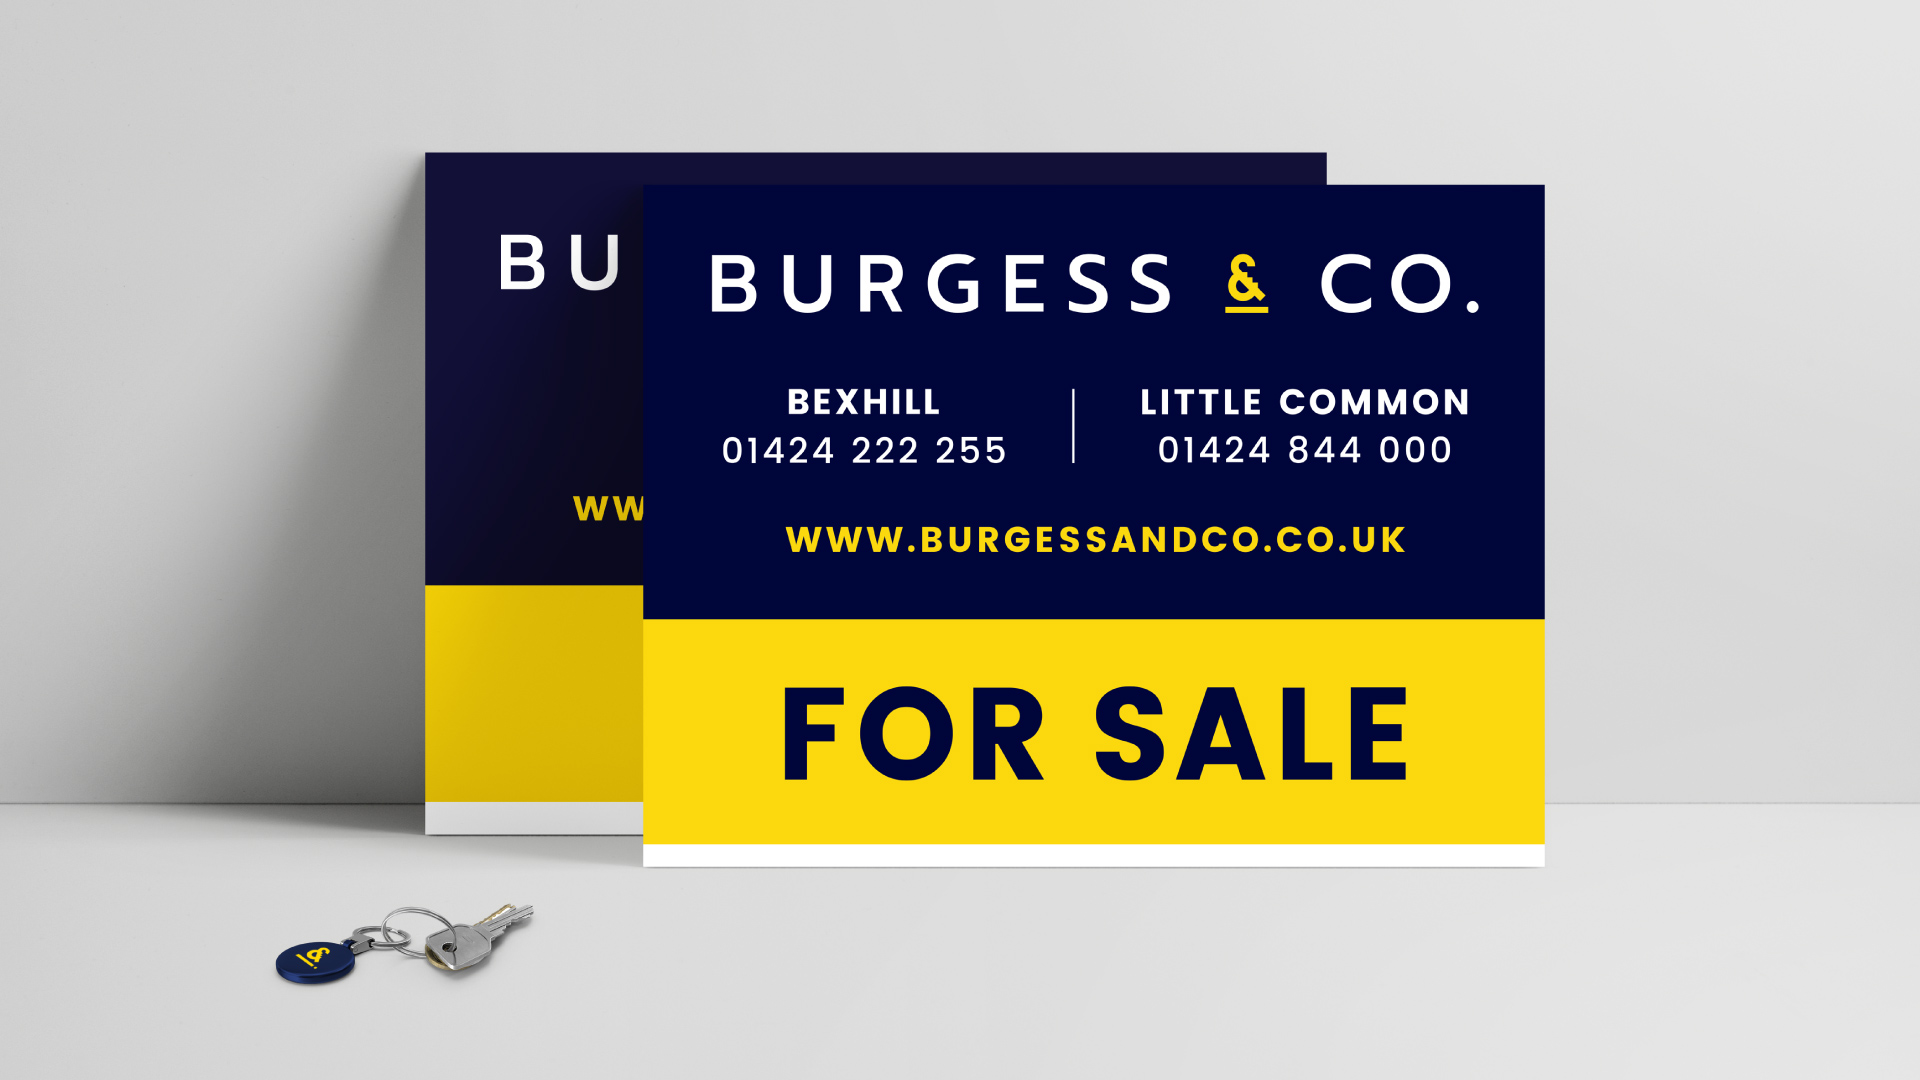 Burgess&Co. brand identity for sale boards.